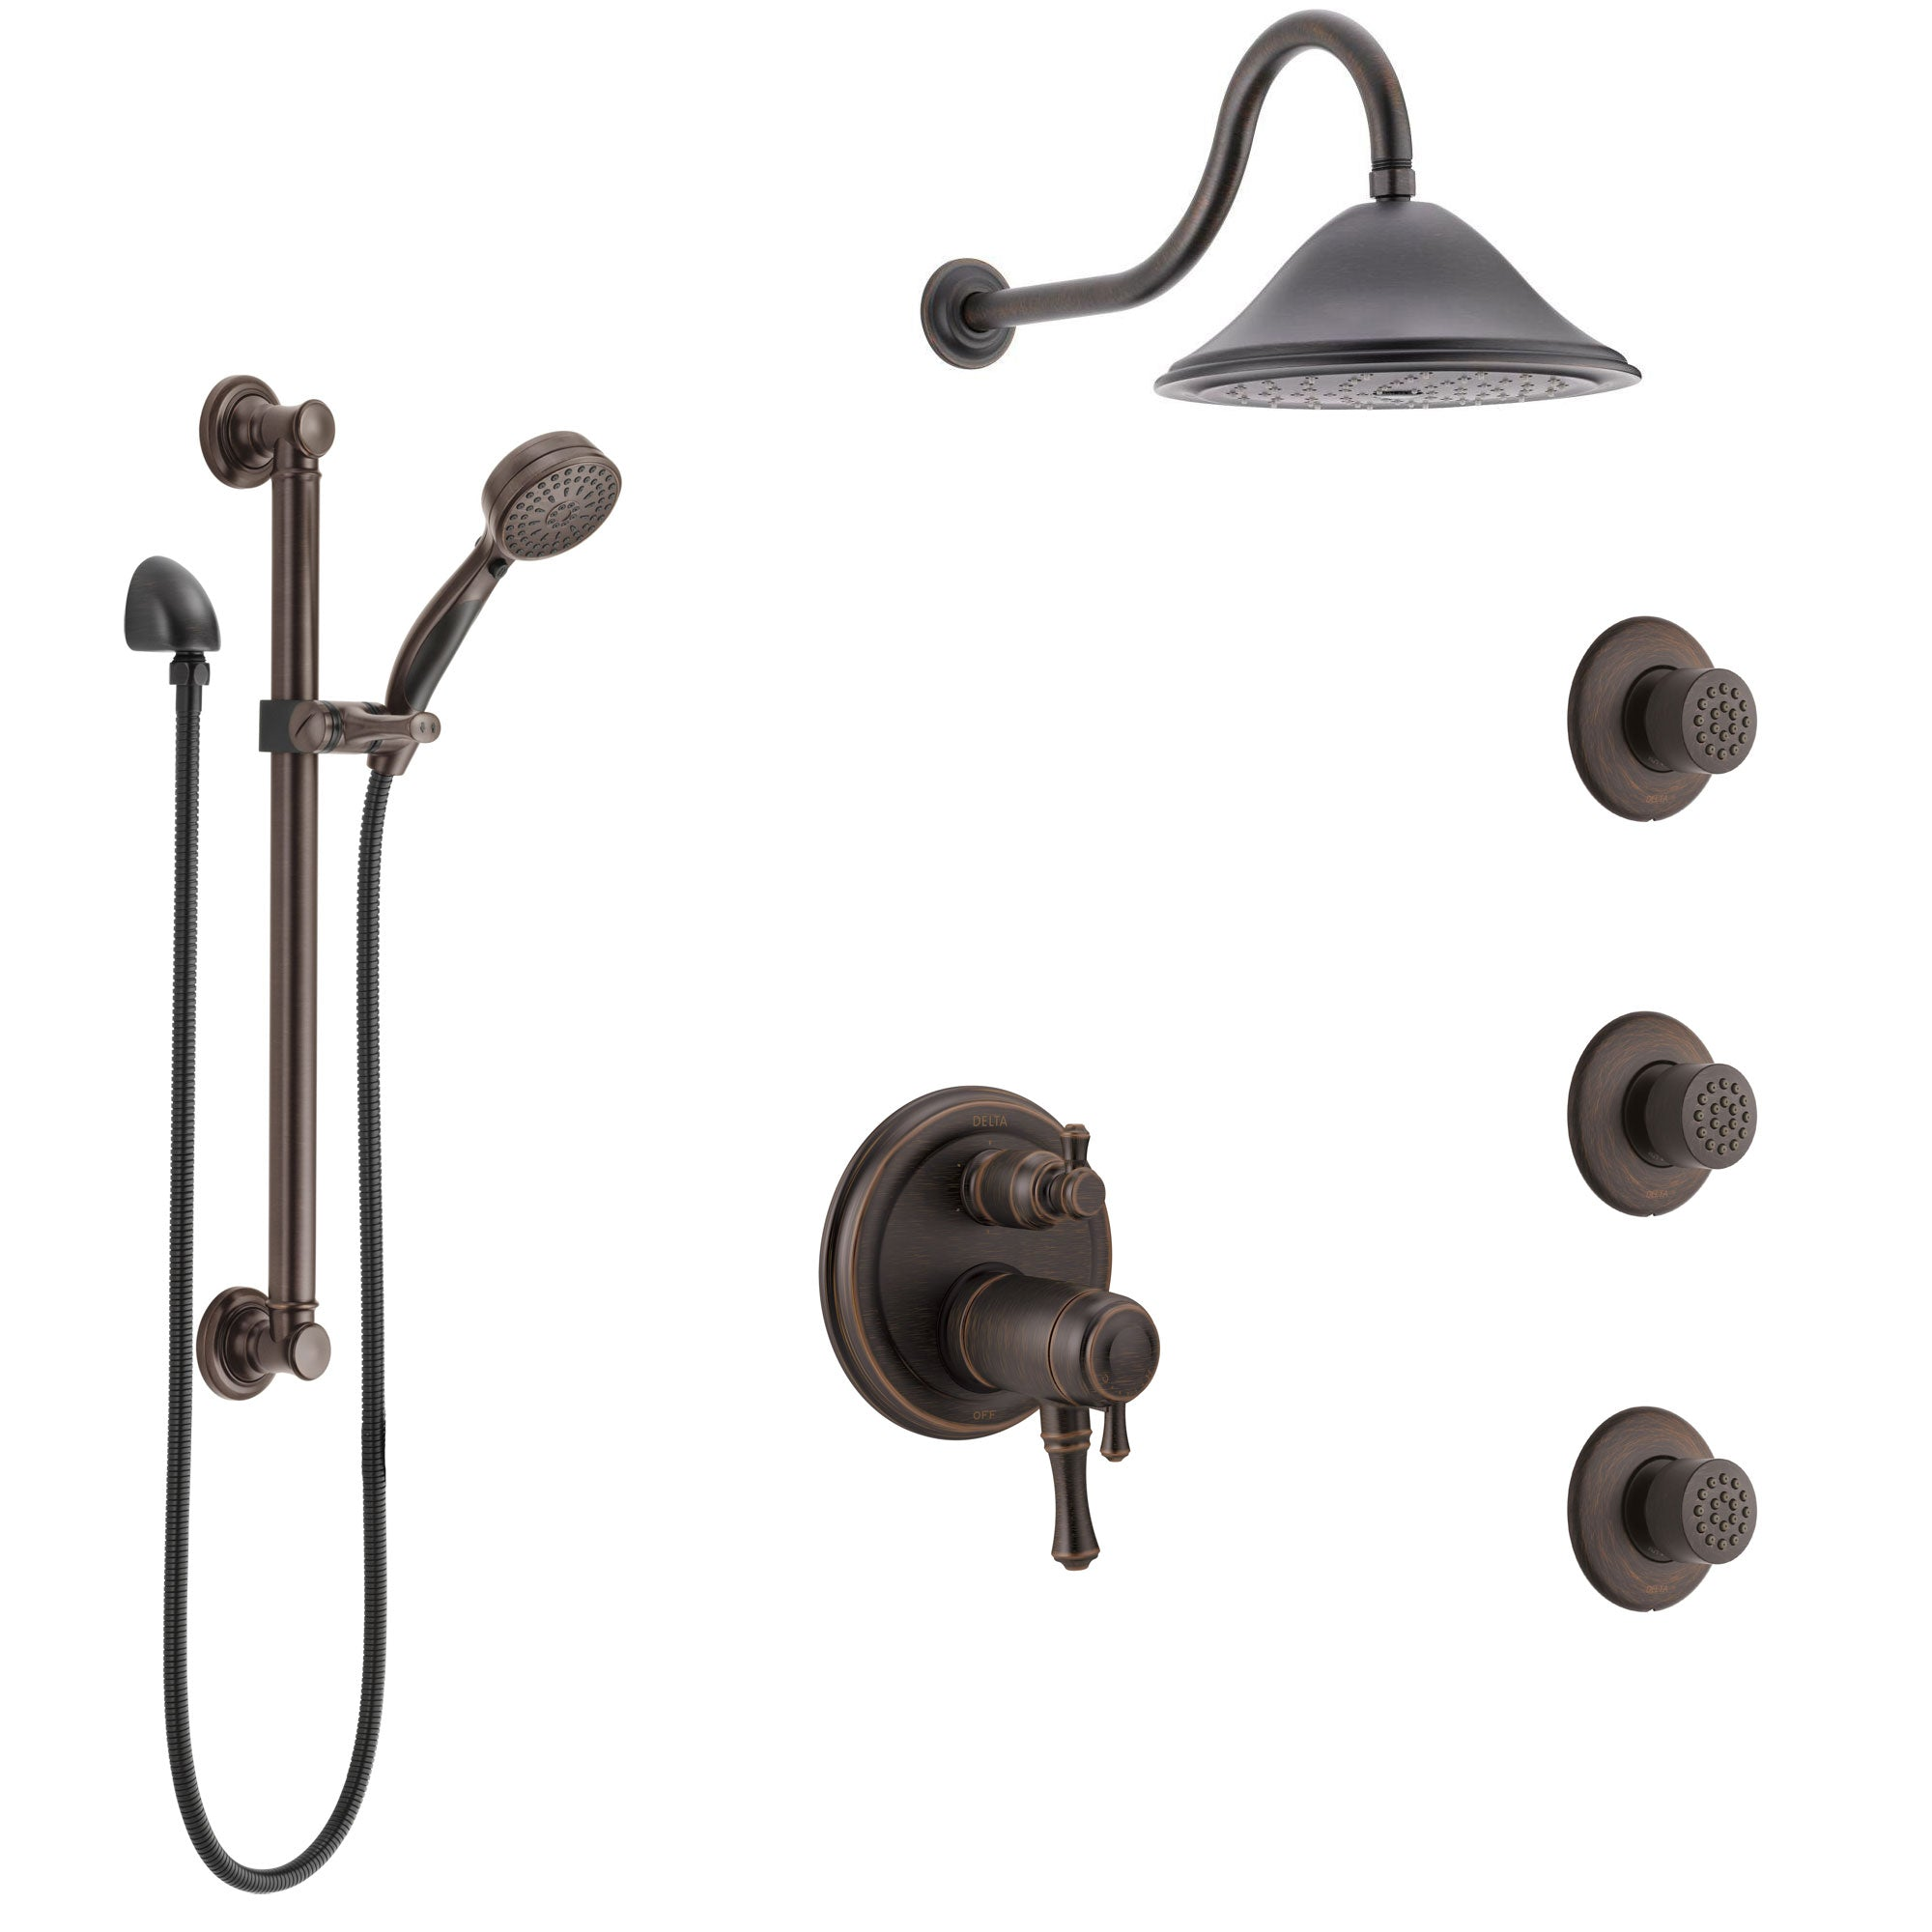 Delta Cassidy Venetian Bronze Dual Thermostatic Control Integrated Diverter Shower System, Showerhead, 3 Body Sprays, Grab Bar Hand Spray SS27T997RB5